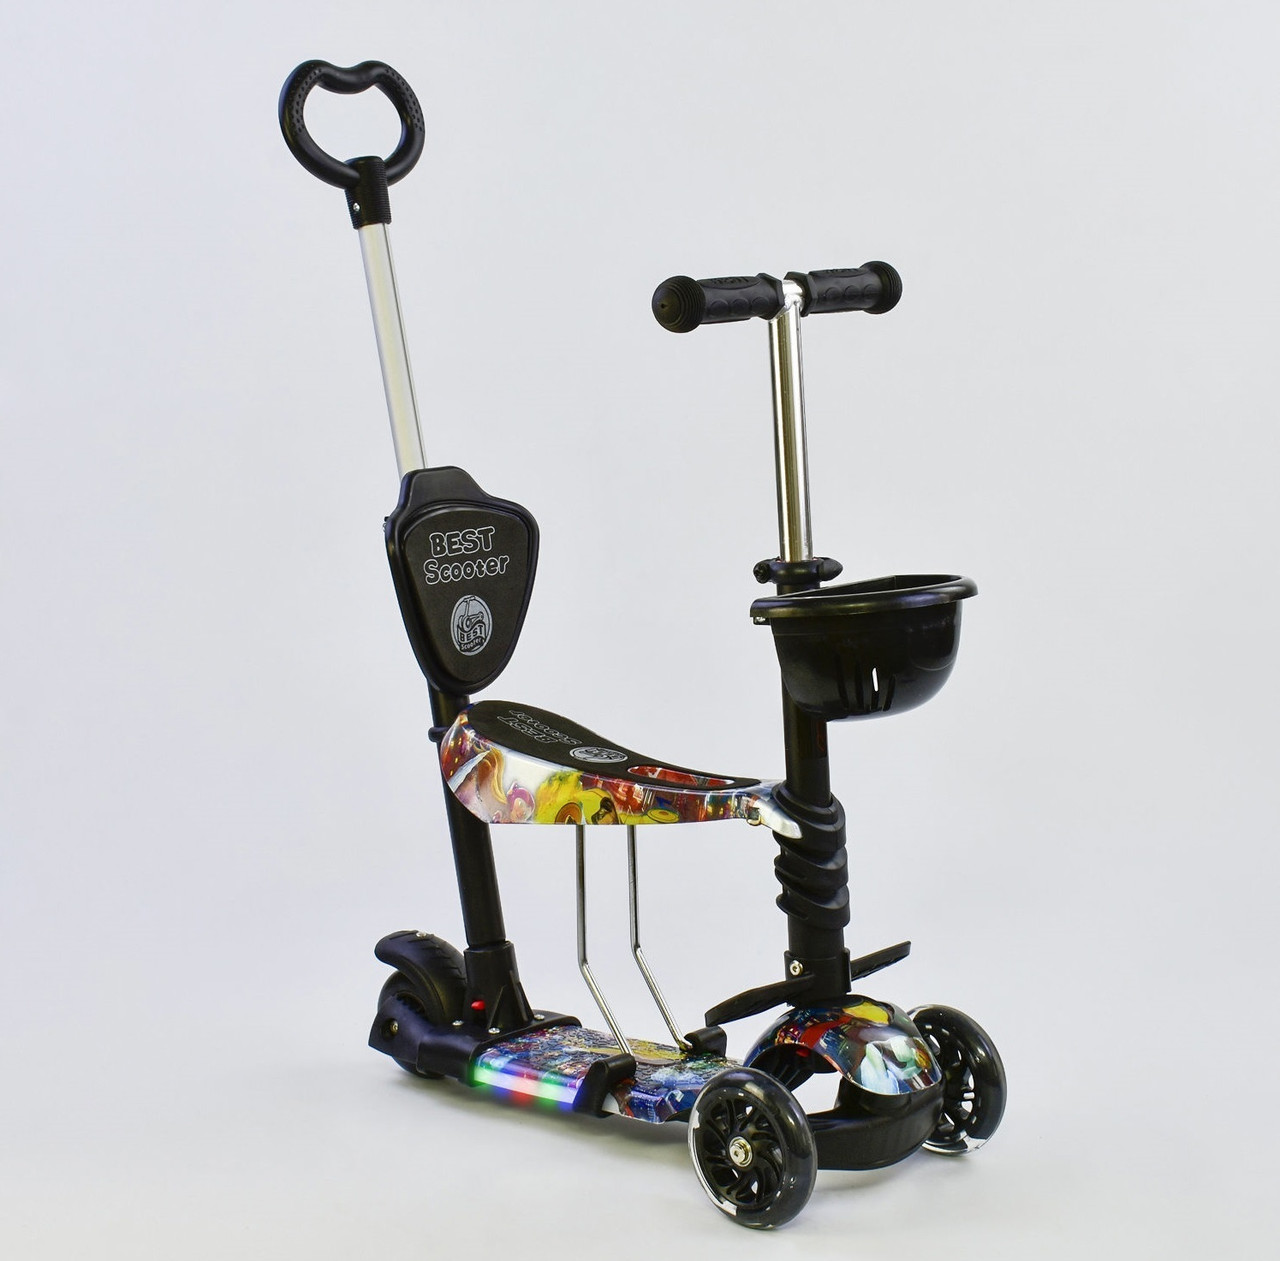 Best Scooter Самокат 5 в 1 Best Scooter 67050 Black/Abstraction (67050)